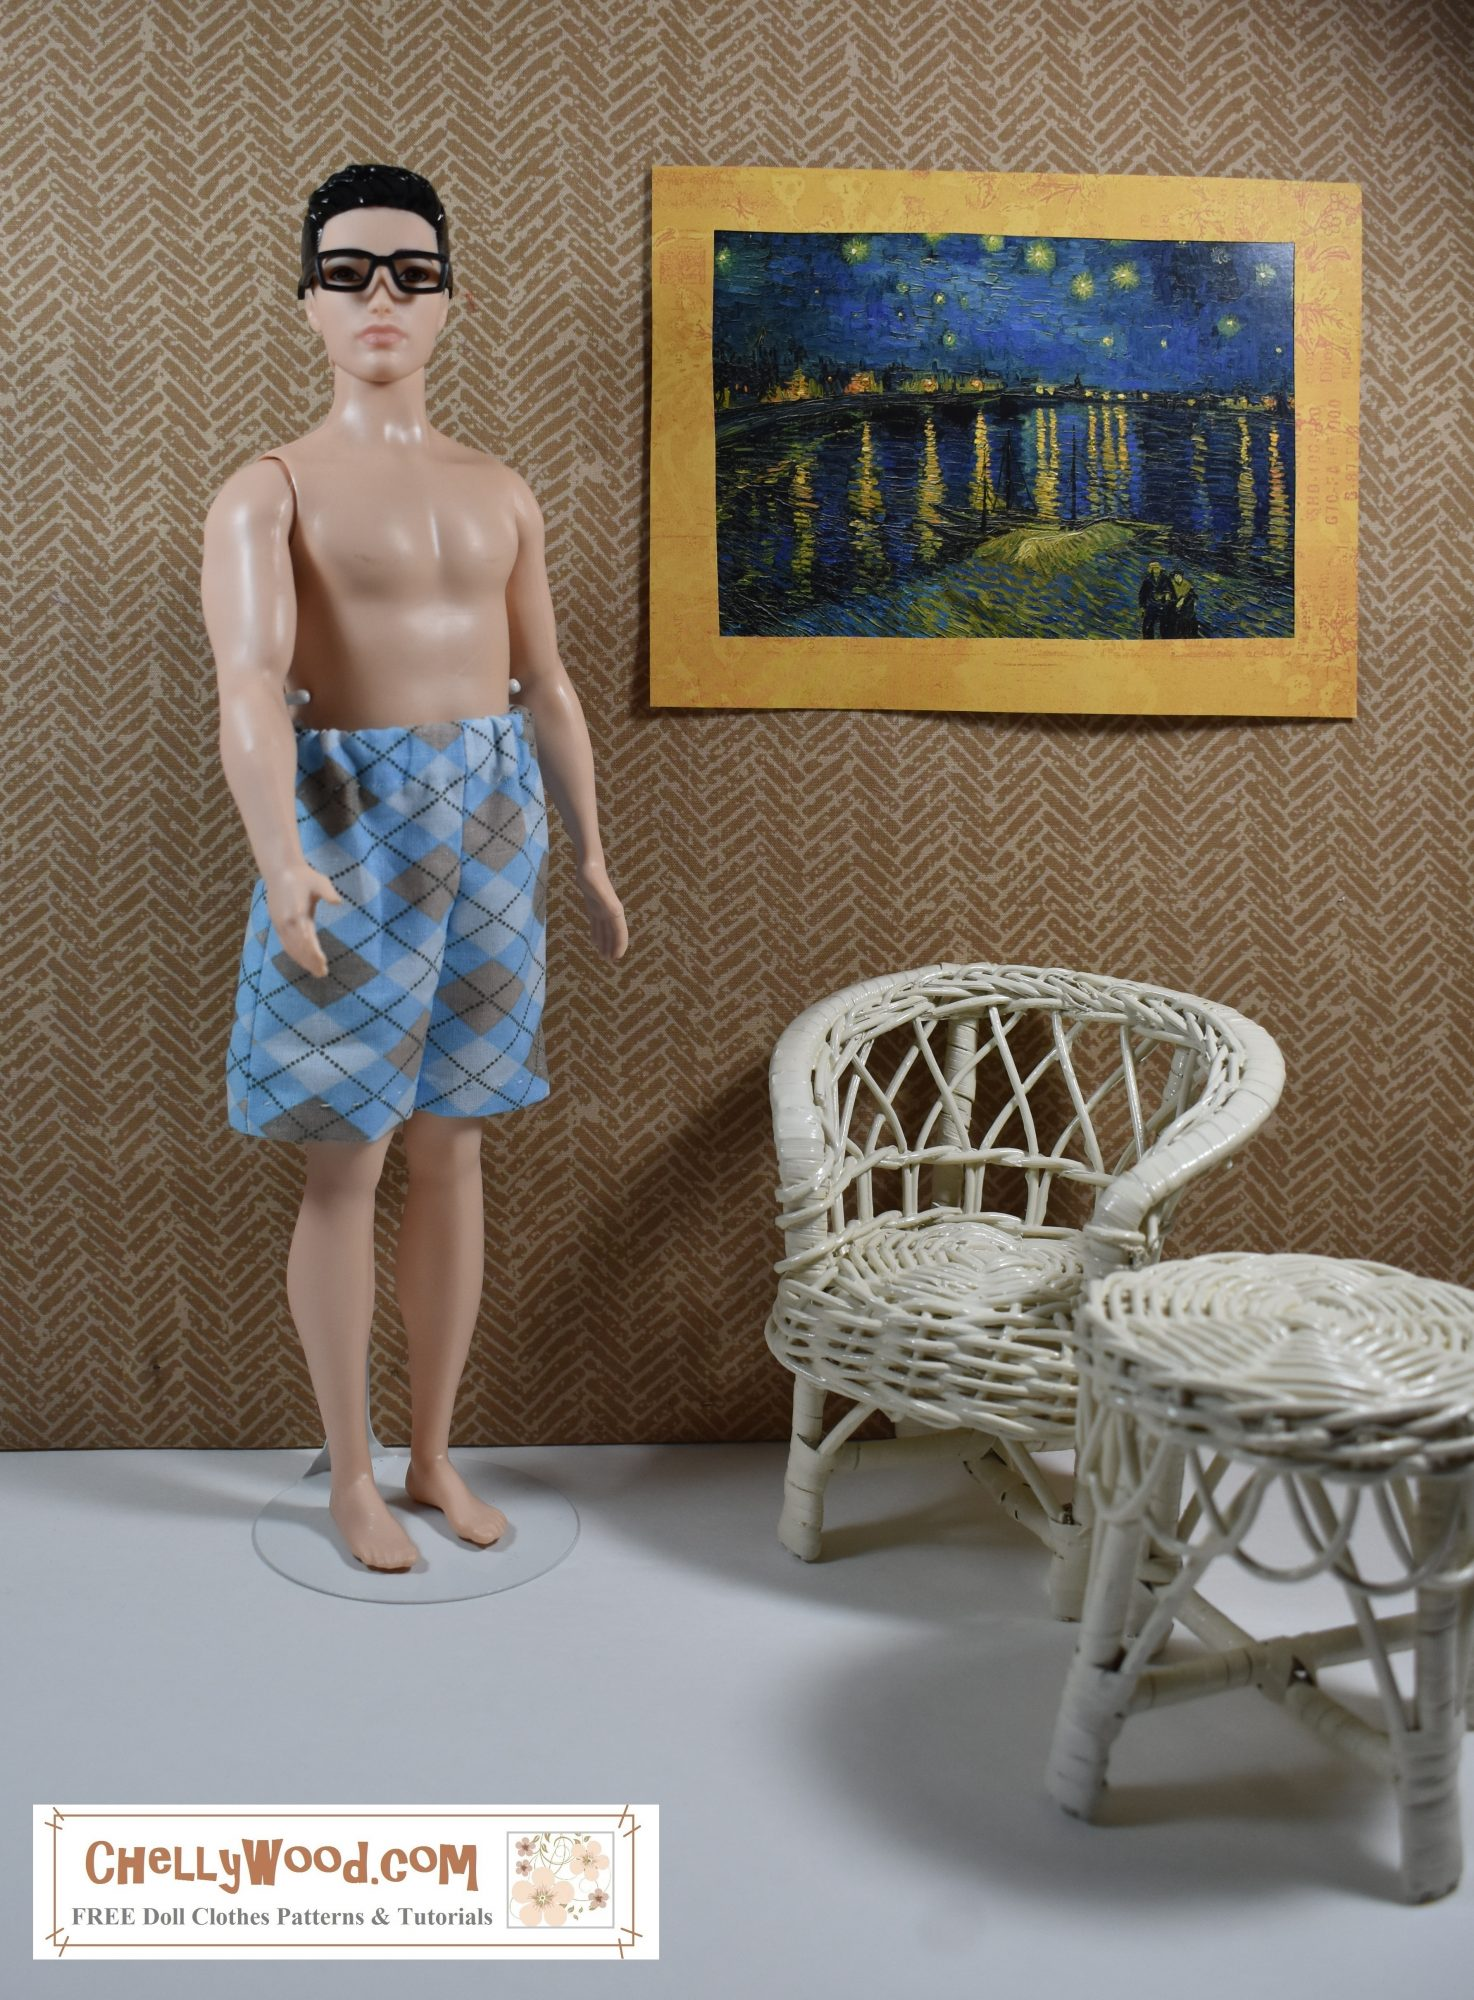 """Broad Ken stands in a one six scale diorama room with white wicker furniture. On the wall is a night-time painting by Van Gogh entitled, """"Starry Night Over the Rhône"""" which is a different painting than his famous """"The Starry Night"""" painting. Broad Ken appears to have just gotten out of bed. He's wearing boxers or maybe just a pair of summer shorts made of blue and tan argyle plaid cotton with an elastic waist. His chest and feet are bare, but he wears a pair of retro style reading glasses, like he is getting ready to have a cup of morning coffee and read the paper."""